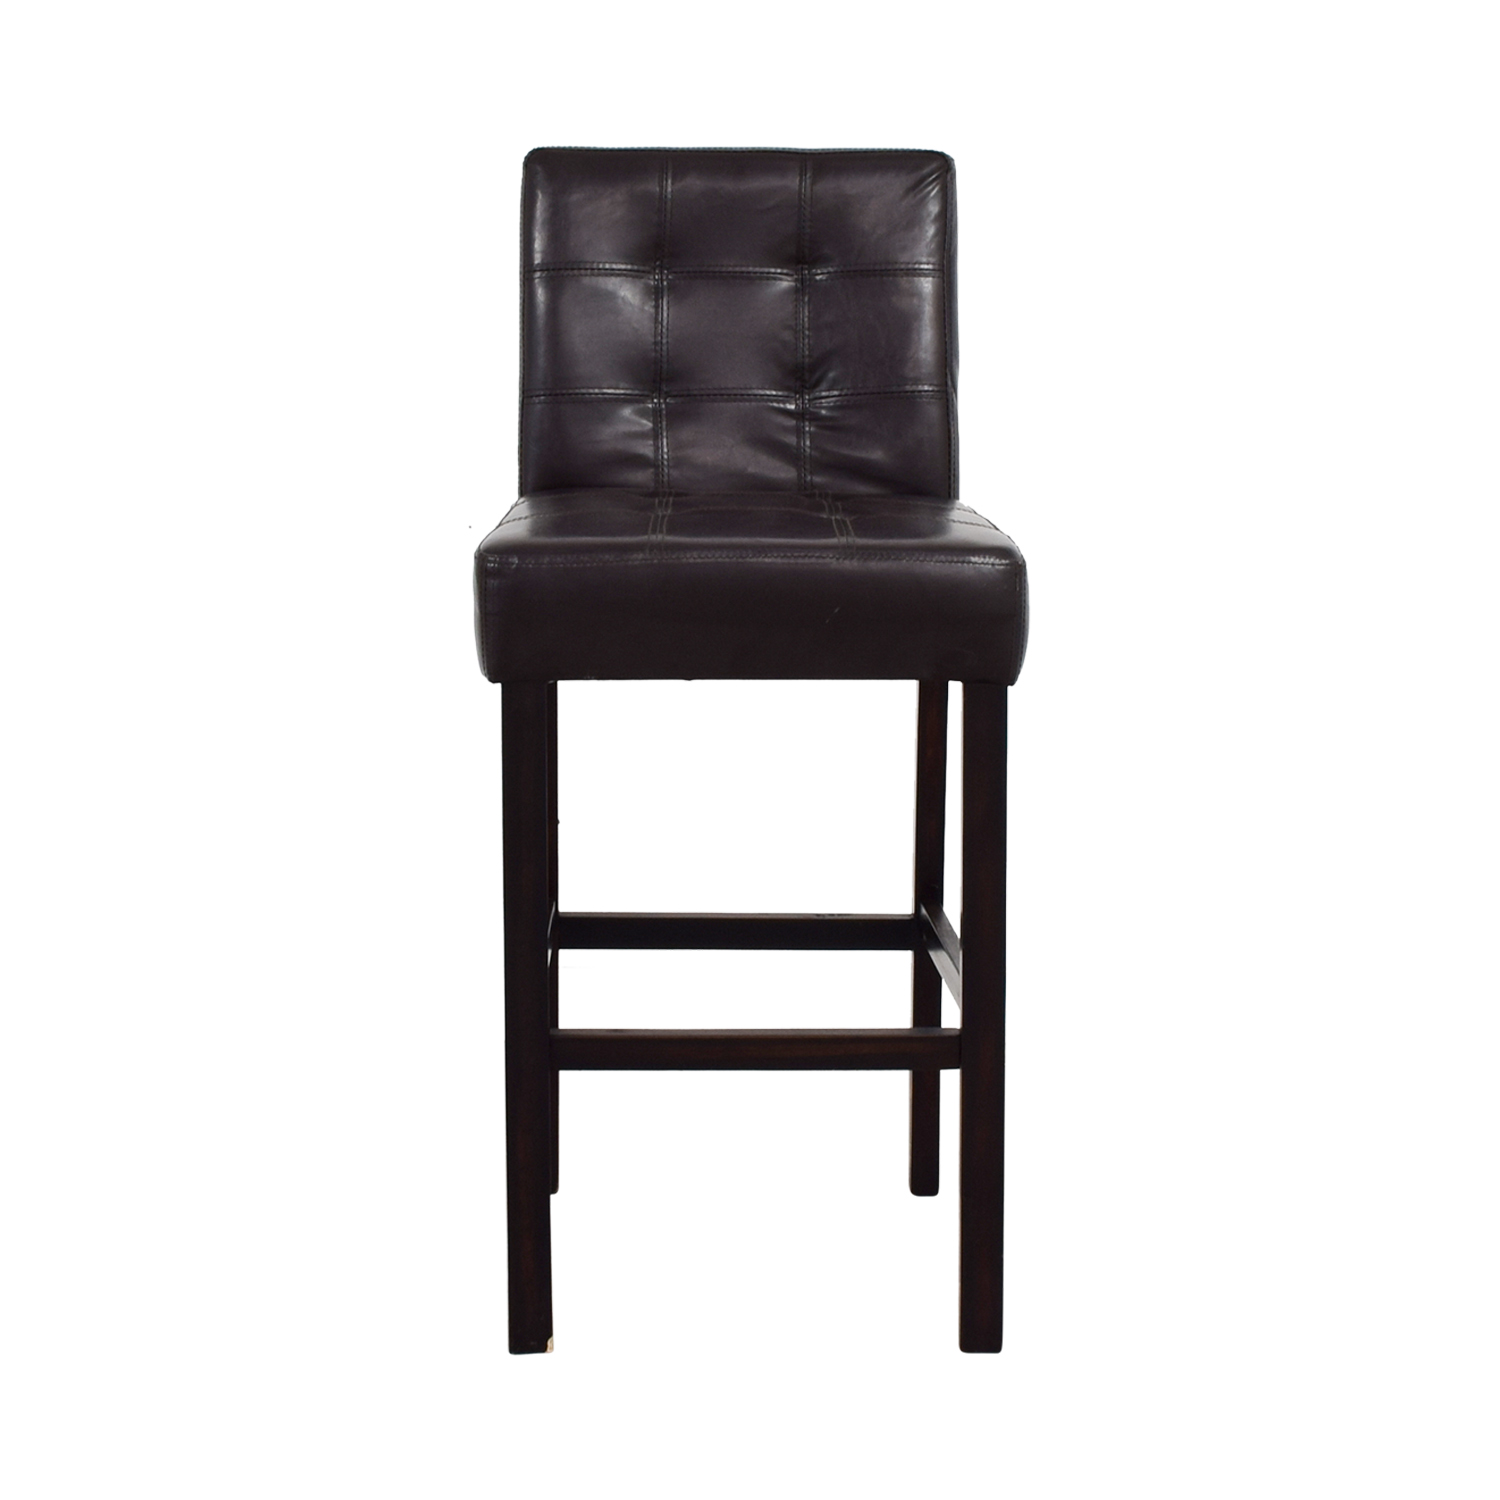 Tufted Bar Height Chair price